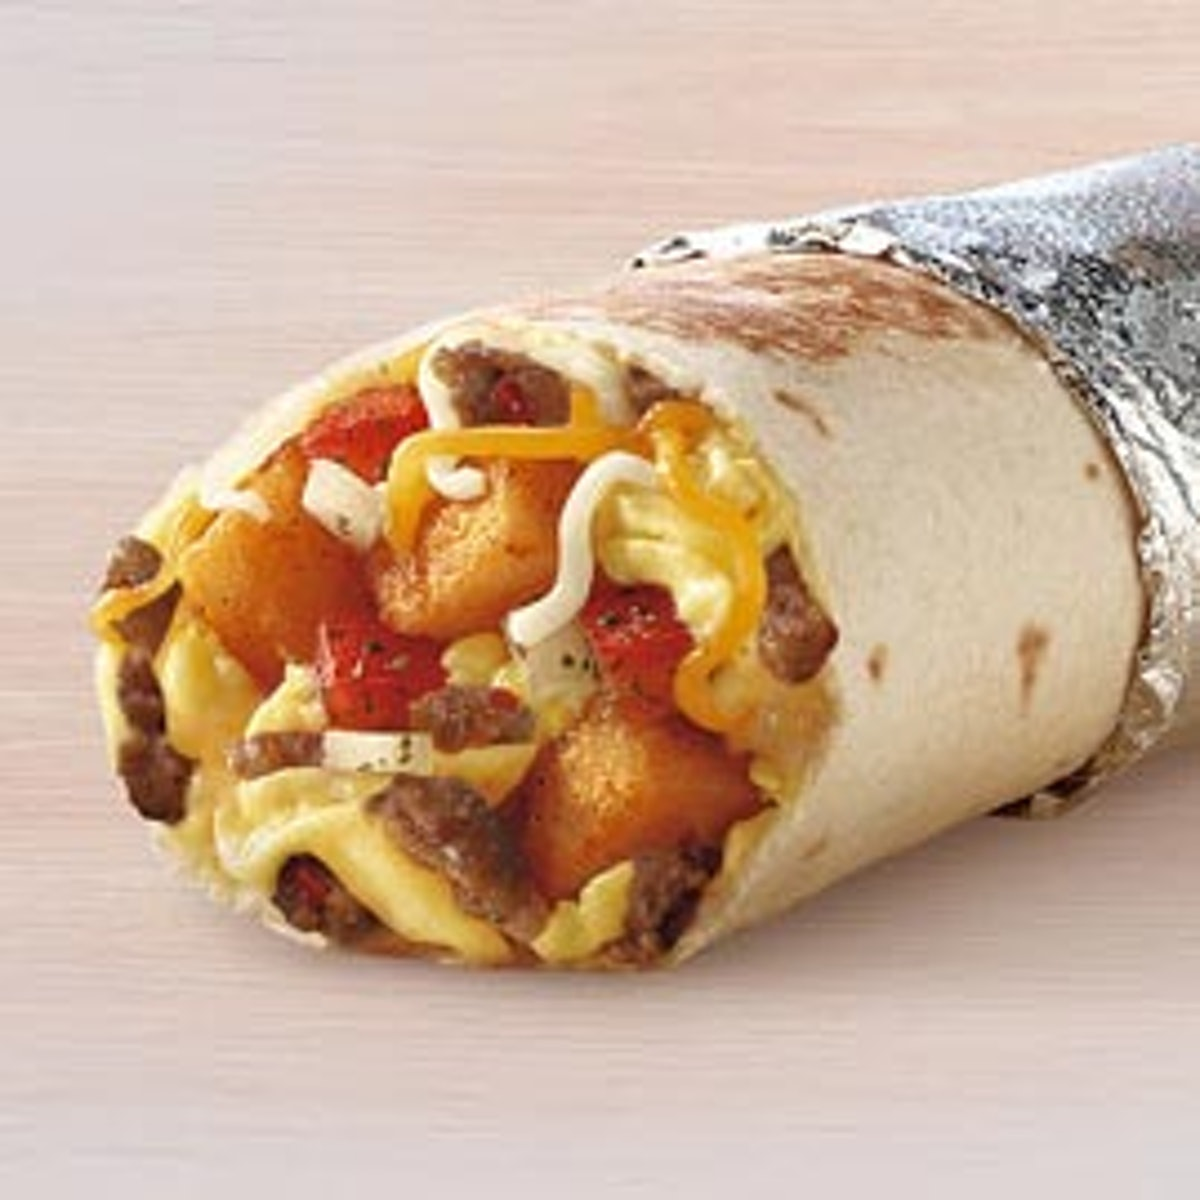 Taco Bell's new Toasted Breakfast Burritos are here, so get ready to make mornings better.